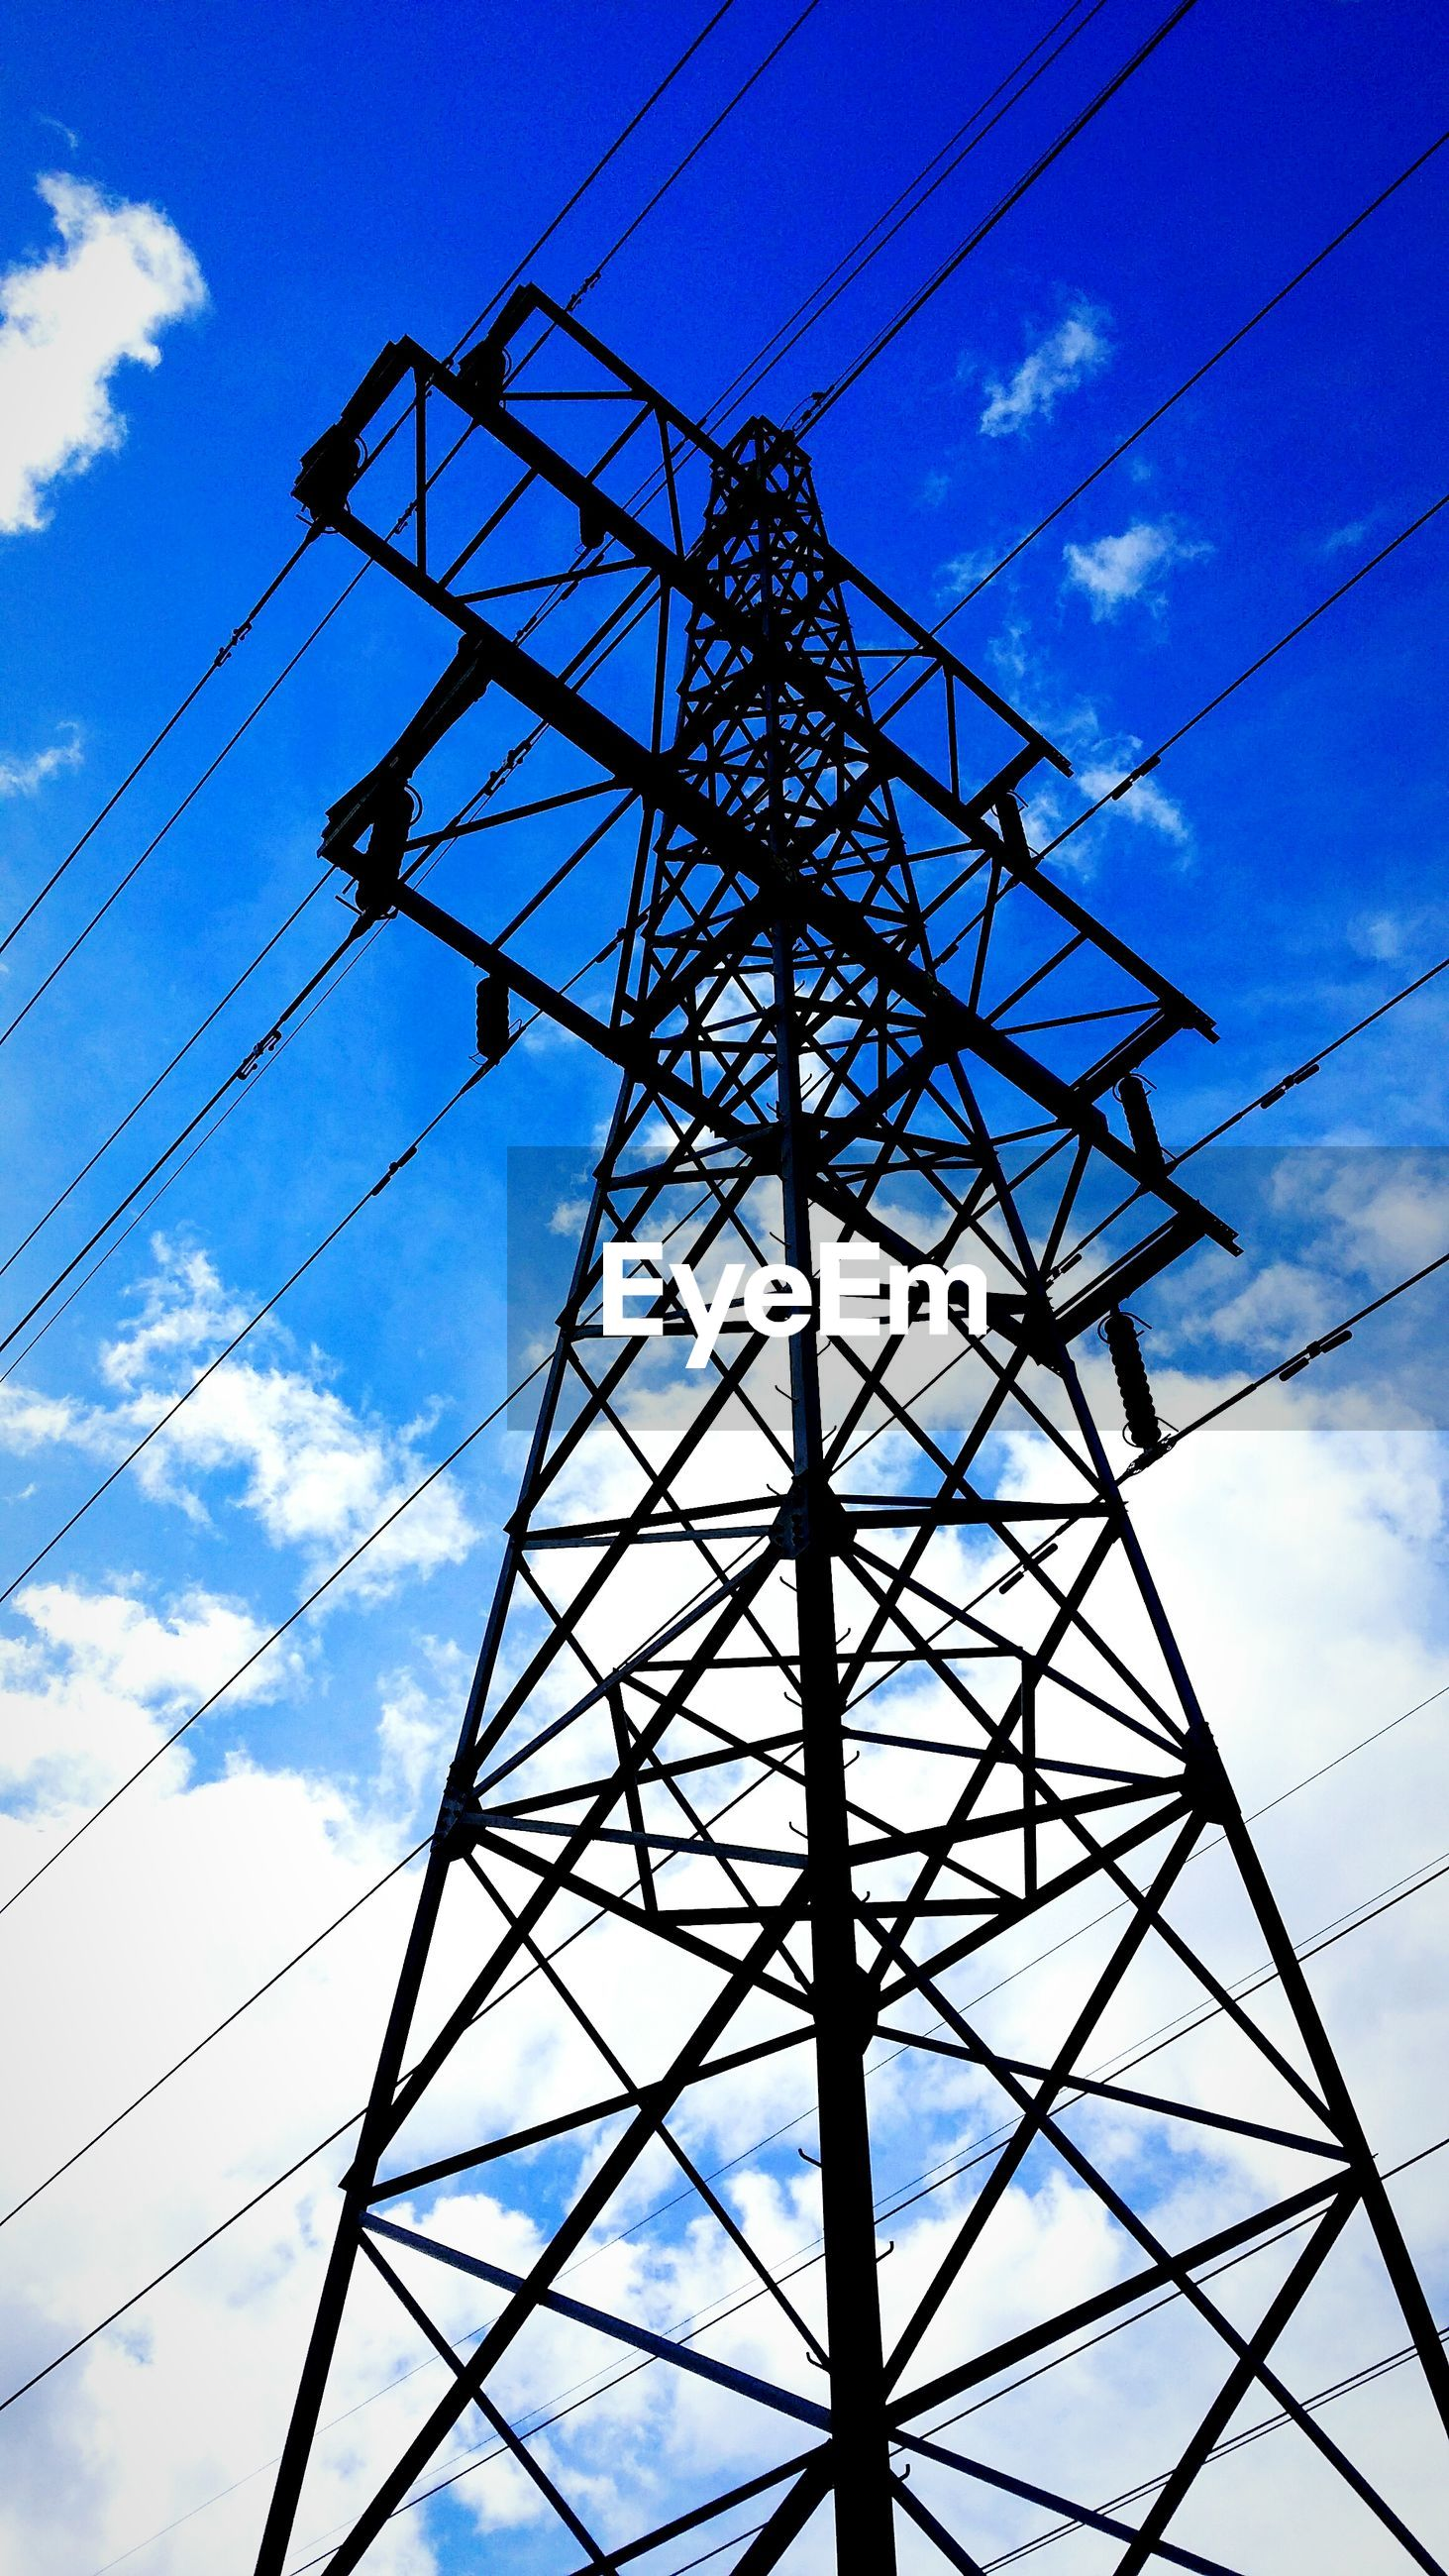 Low angle view of electricity pylon against cloudy blue sky